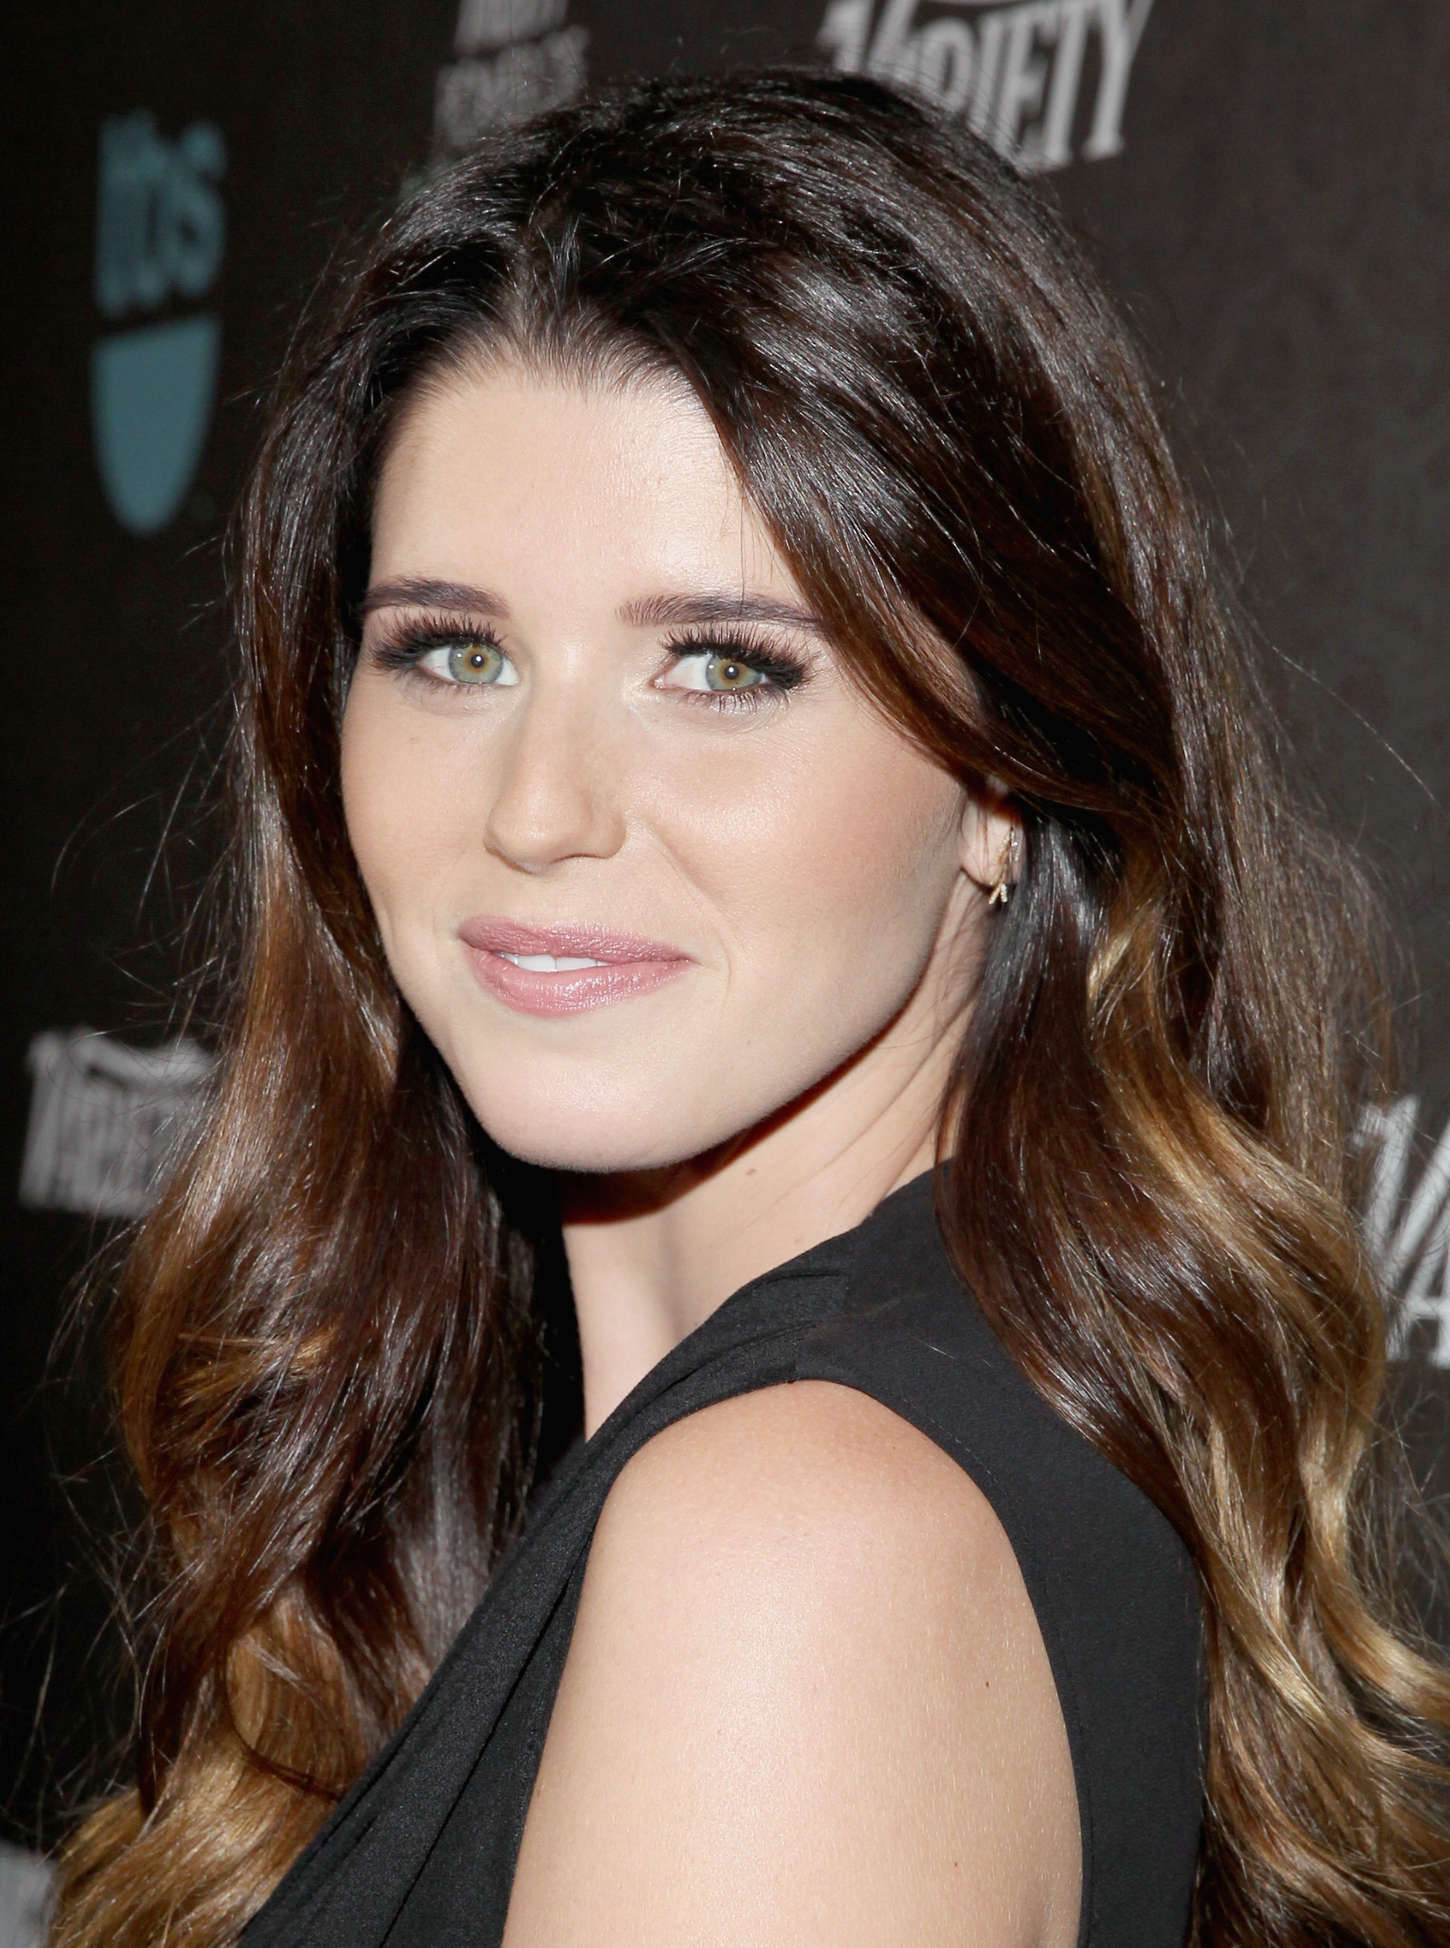 katherine schwarzenegger instagramkatherine schwarzenegger twitter, katherine schwarzenegger facebook, katherine schwarzenegger height, katherine schwarzenegger tumblr, katherine schwarzenegger boyfriend, katherine schwarzenegger instagram, katherine schwarzenegger, katherine schwarzenegger wiki, katherine schwarzenegger book, katherine schwarzenegger youtube, katherine schwarzenegger wikipedia, katherine schwarzenegger joseph baena, katherine schwarzenegger net worth, katherine schwarzenegger dating, katherine schwarzenegger hot, katherine schwarzenegger blog, katherine schwarzenegger imdb, katherine schwarzenegger and harry styles, katherine schwarzenegger sorority, katherine schwarzenegger today show